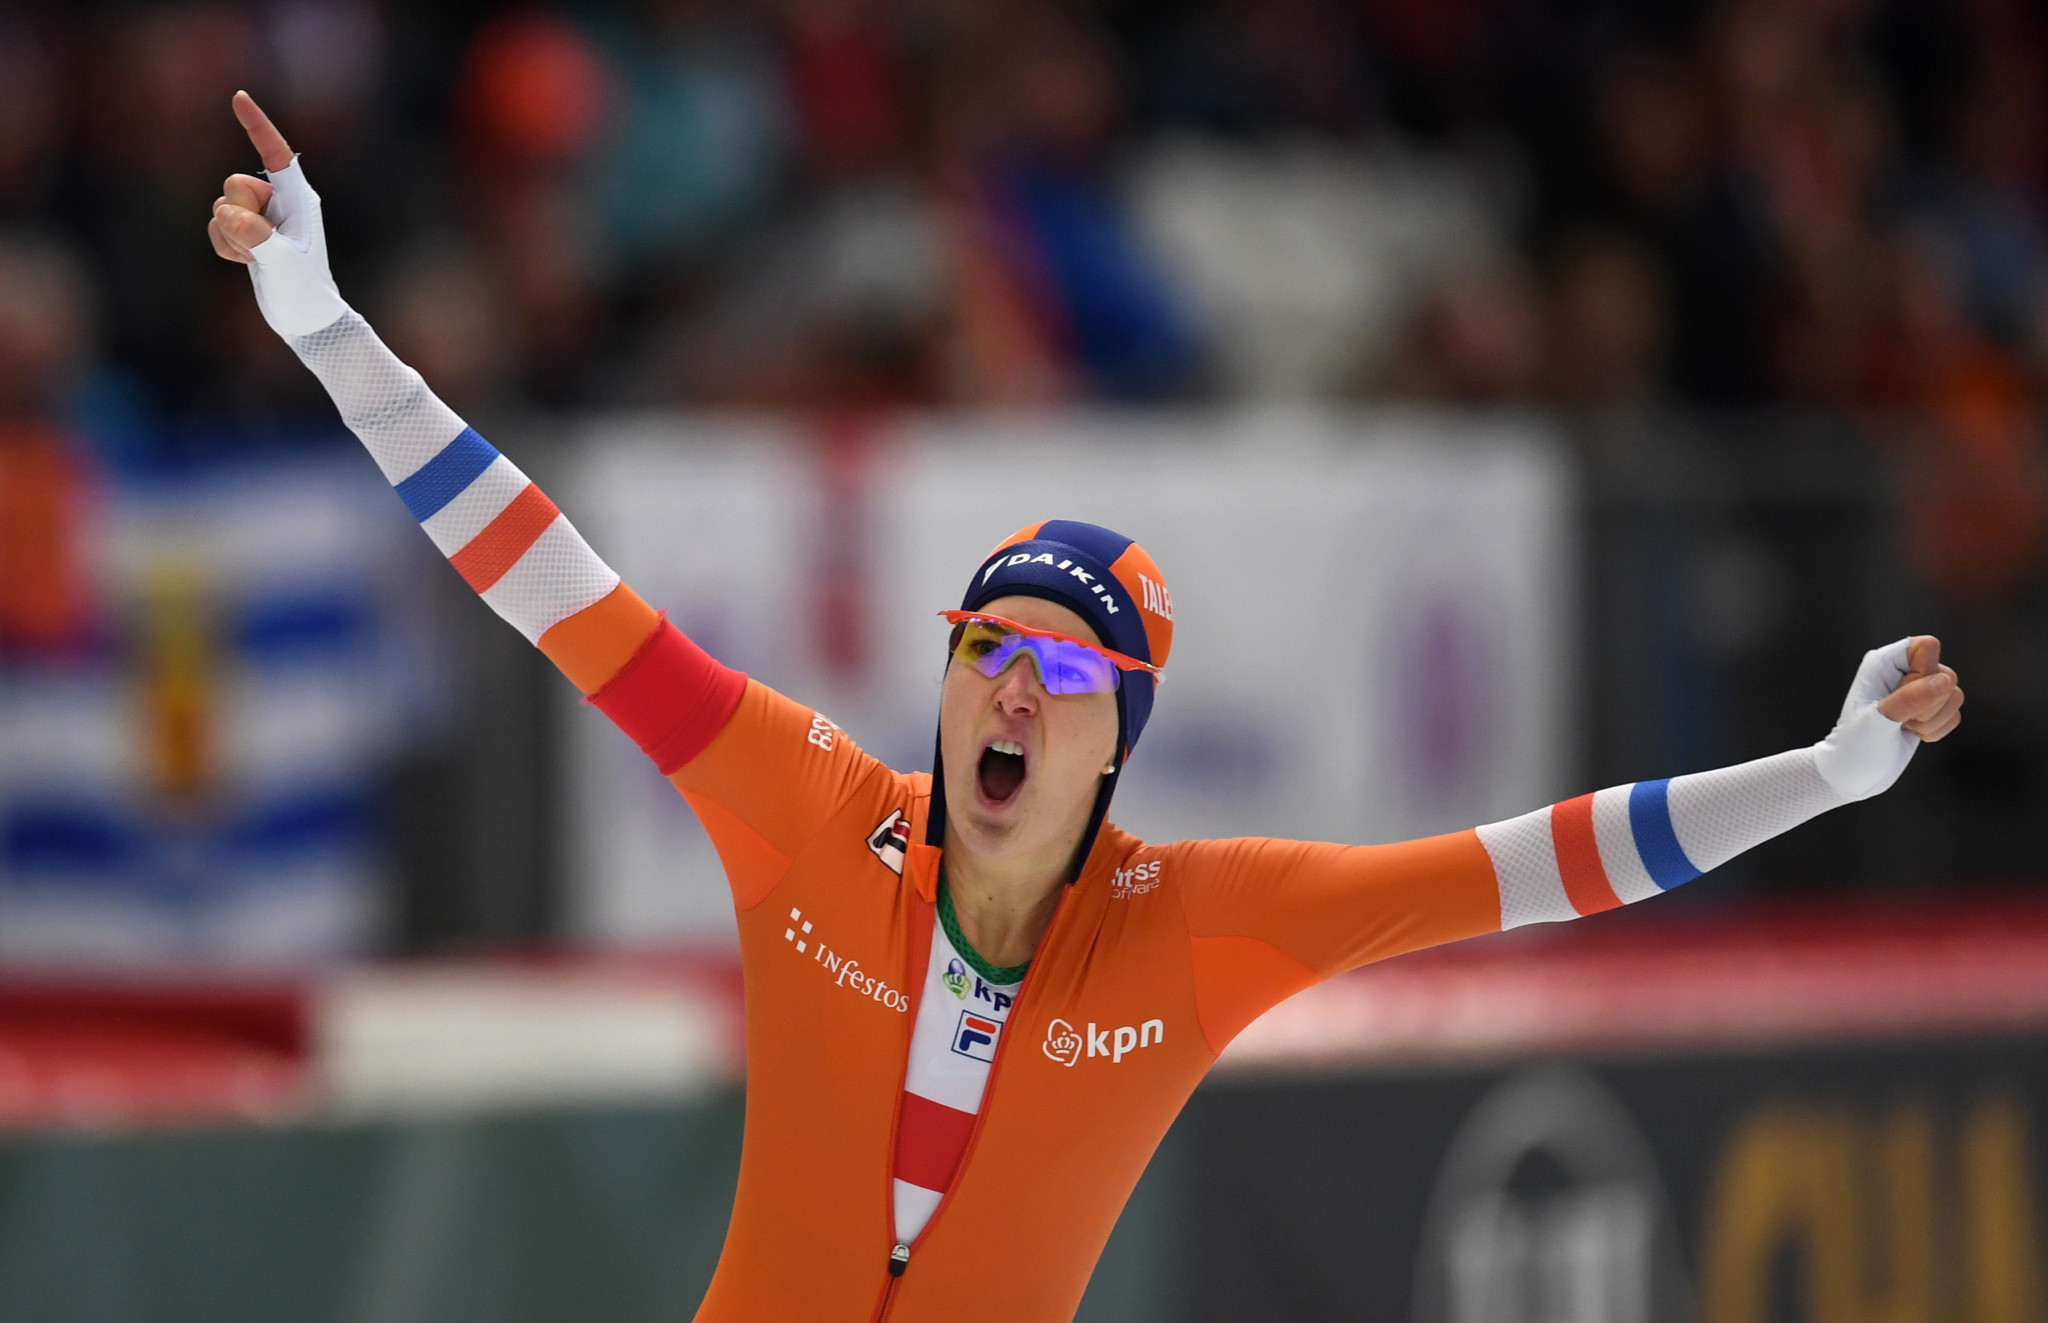 Wüst and Krol secure gold as Dutch dominate final day at ISU World Single Distances Speed Skating Championships